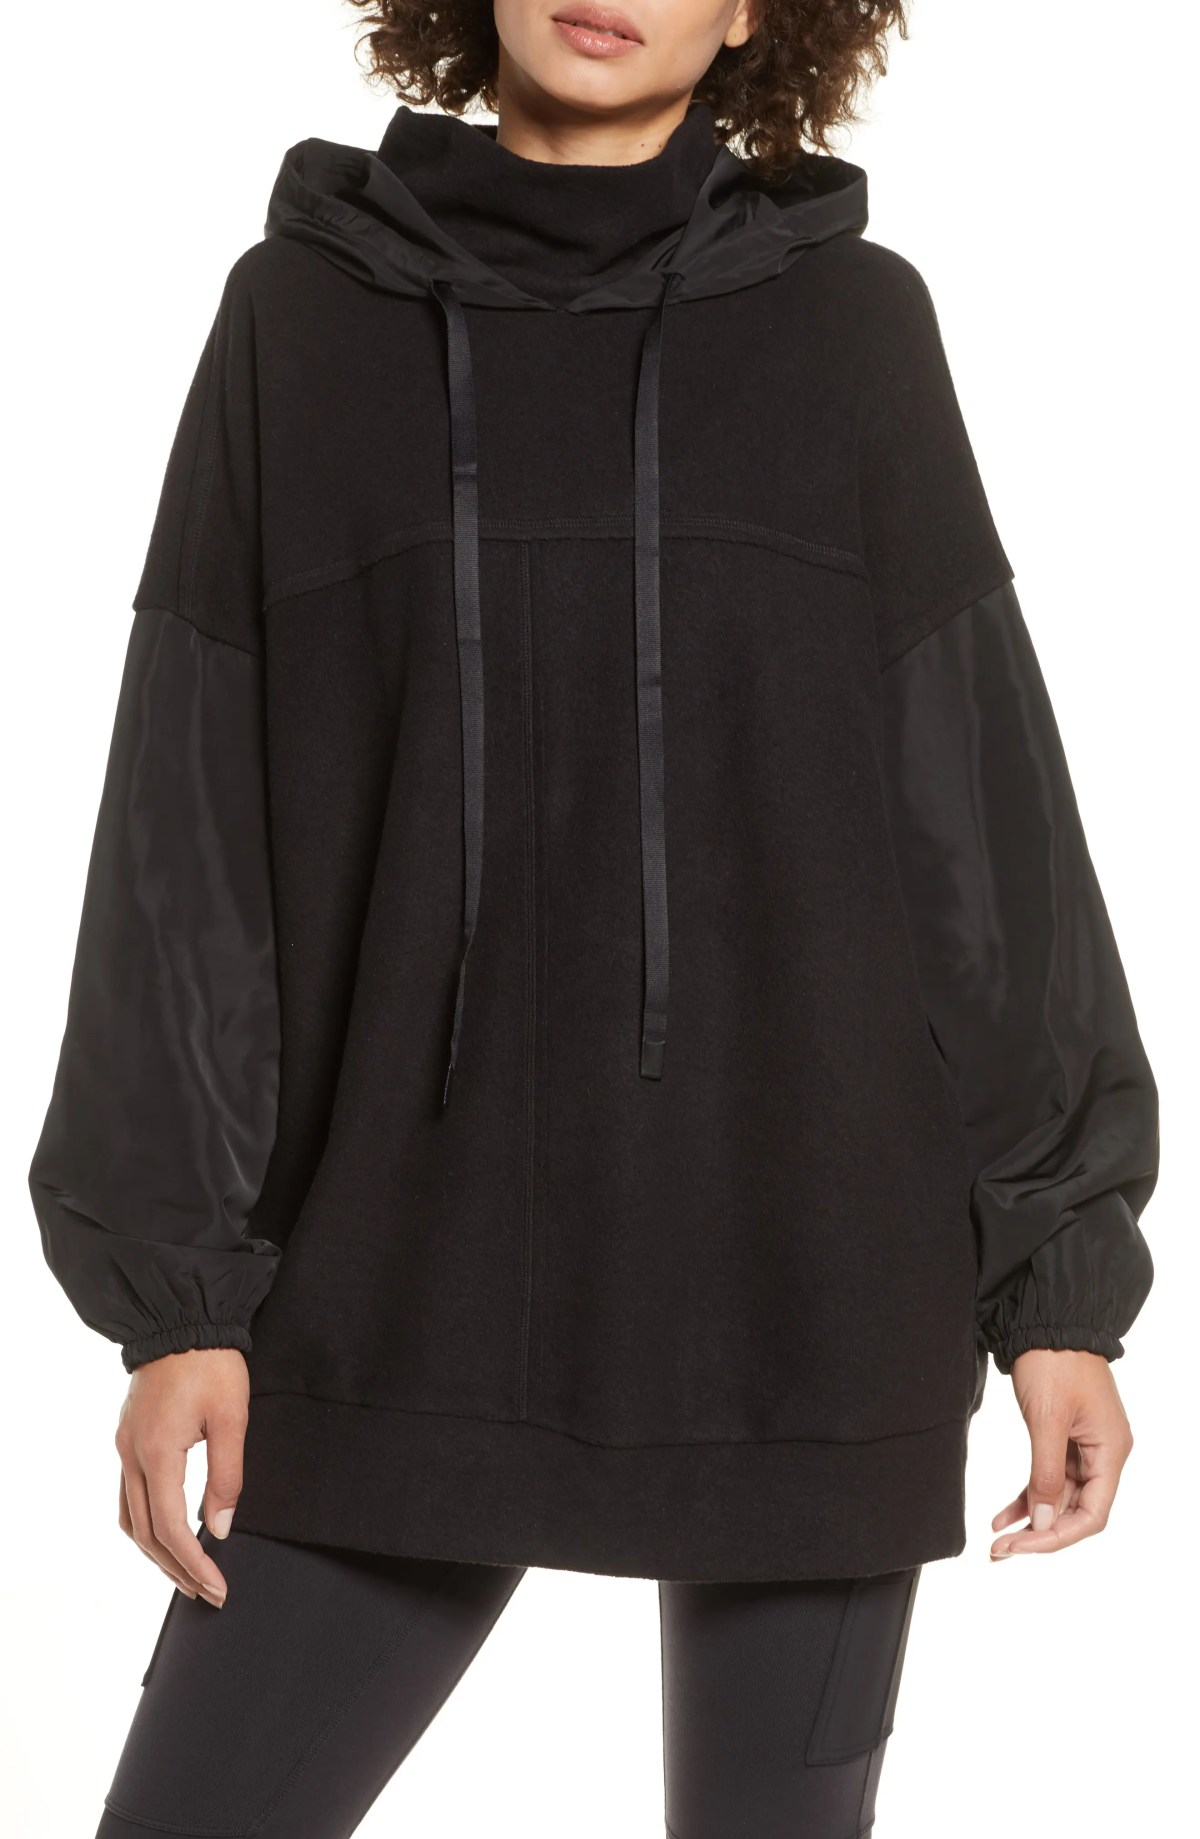 ALO Mixed Media Hooded Sweatshirt, Main, color, BLACK